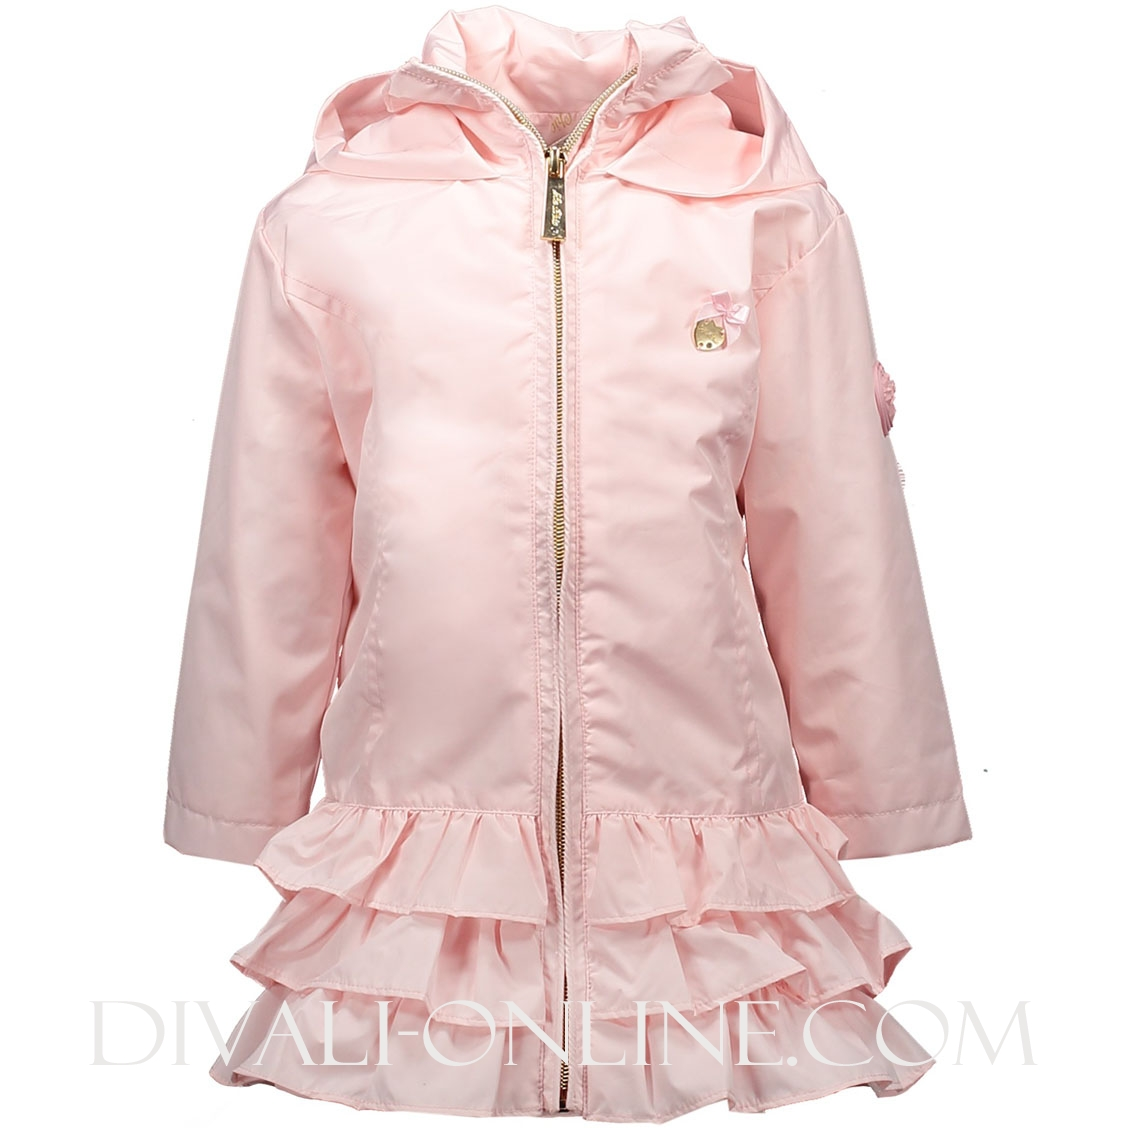 Ruffle Coat Plain Pretty In Pink